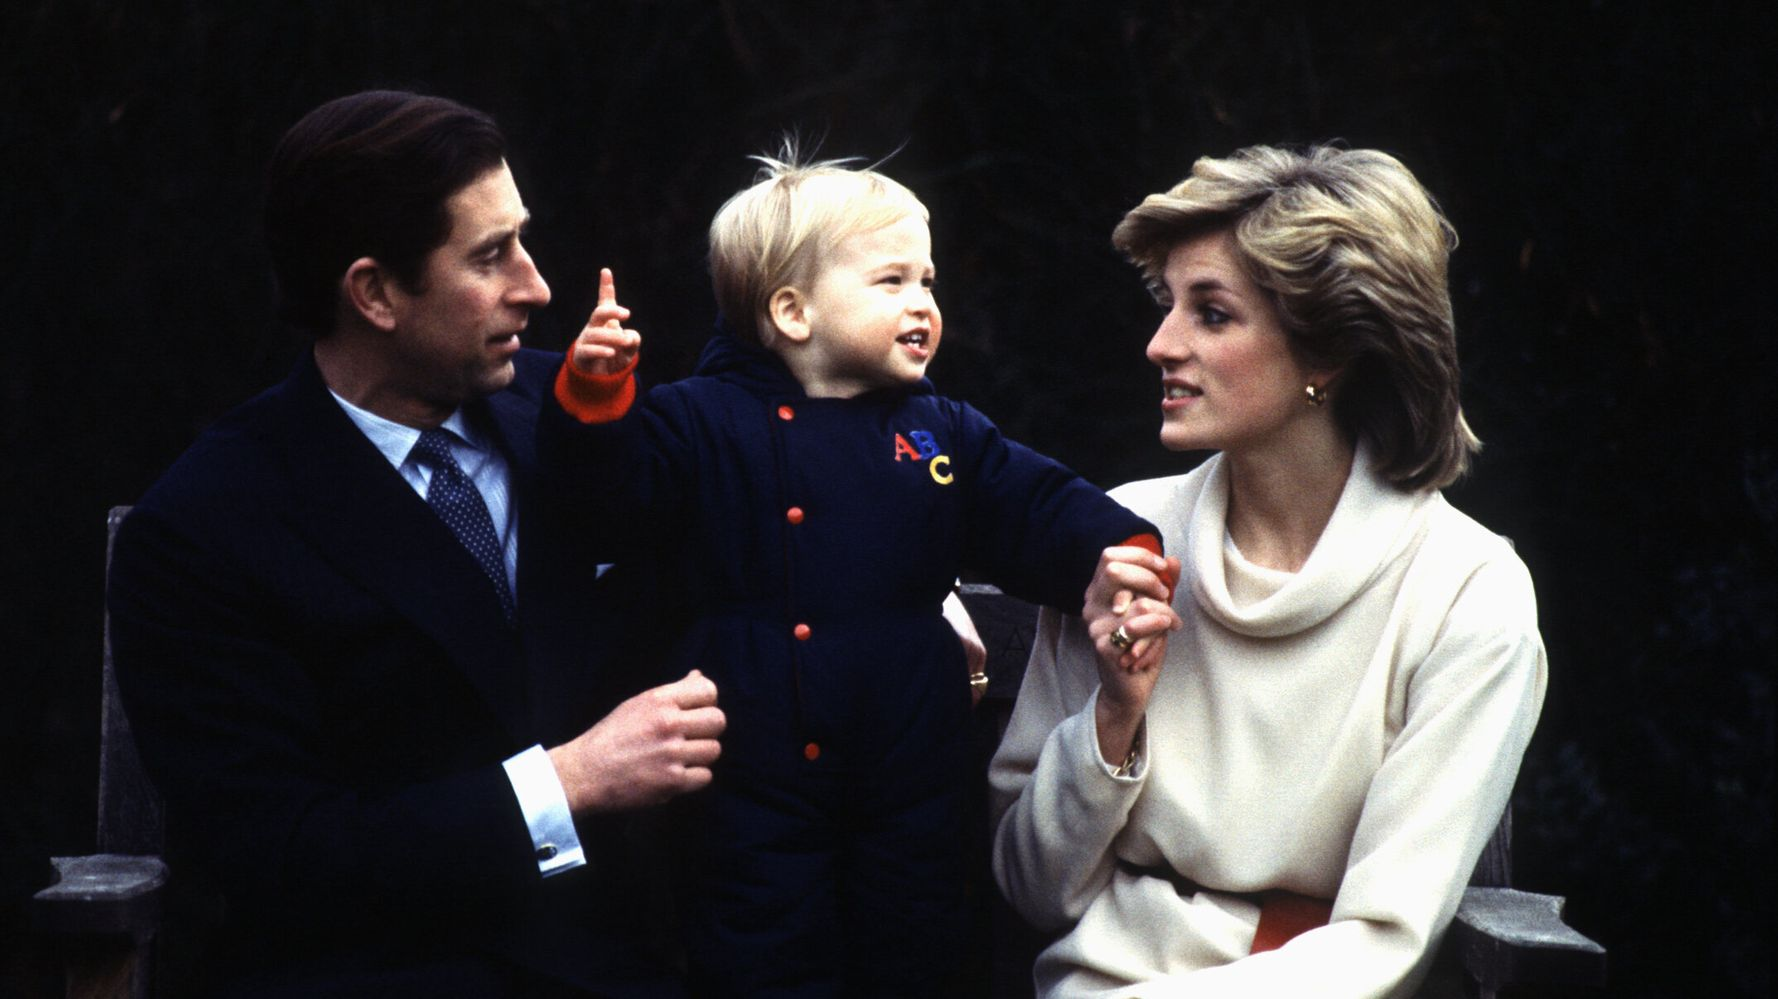 Having Children Made Prince William Grieve His Mom All Over Again